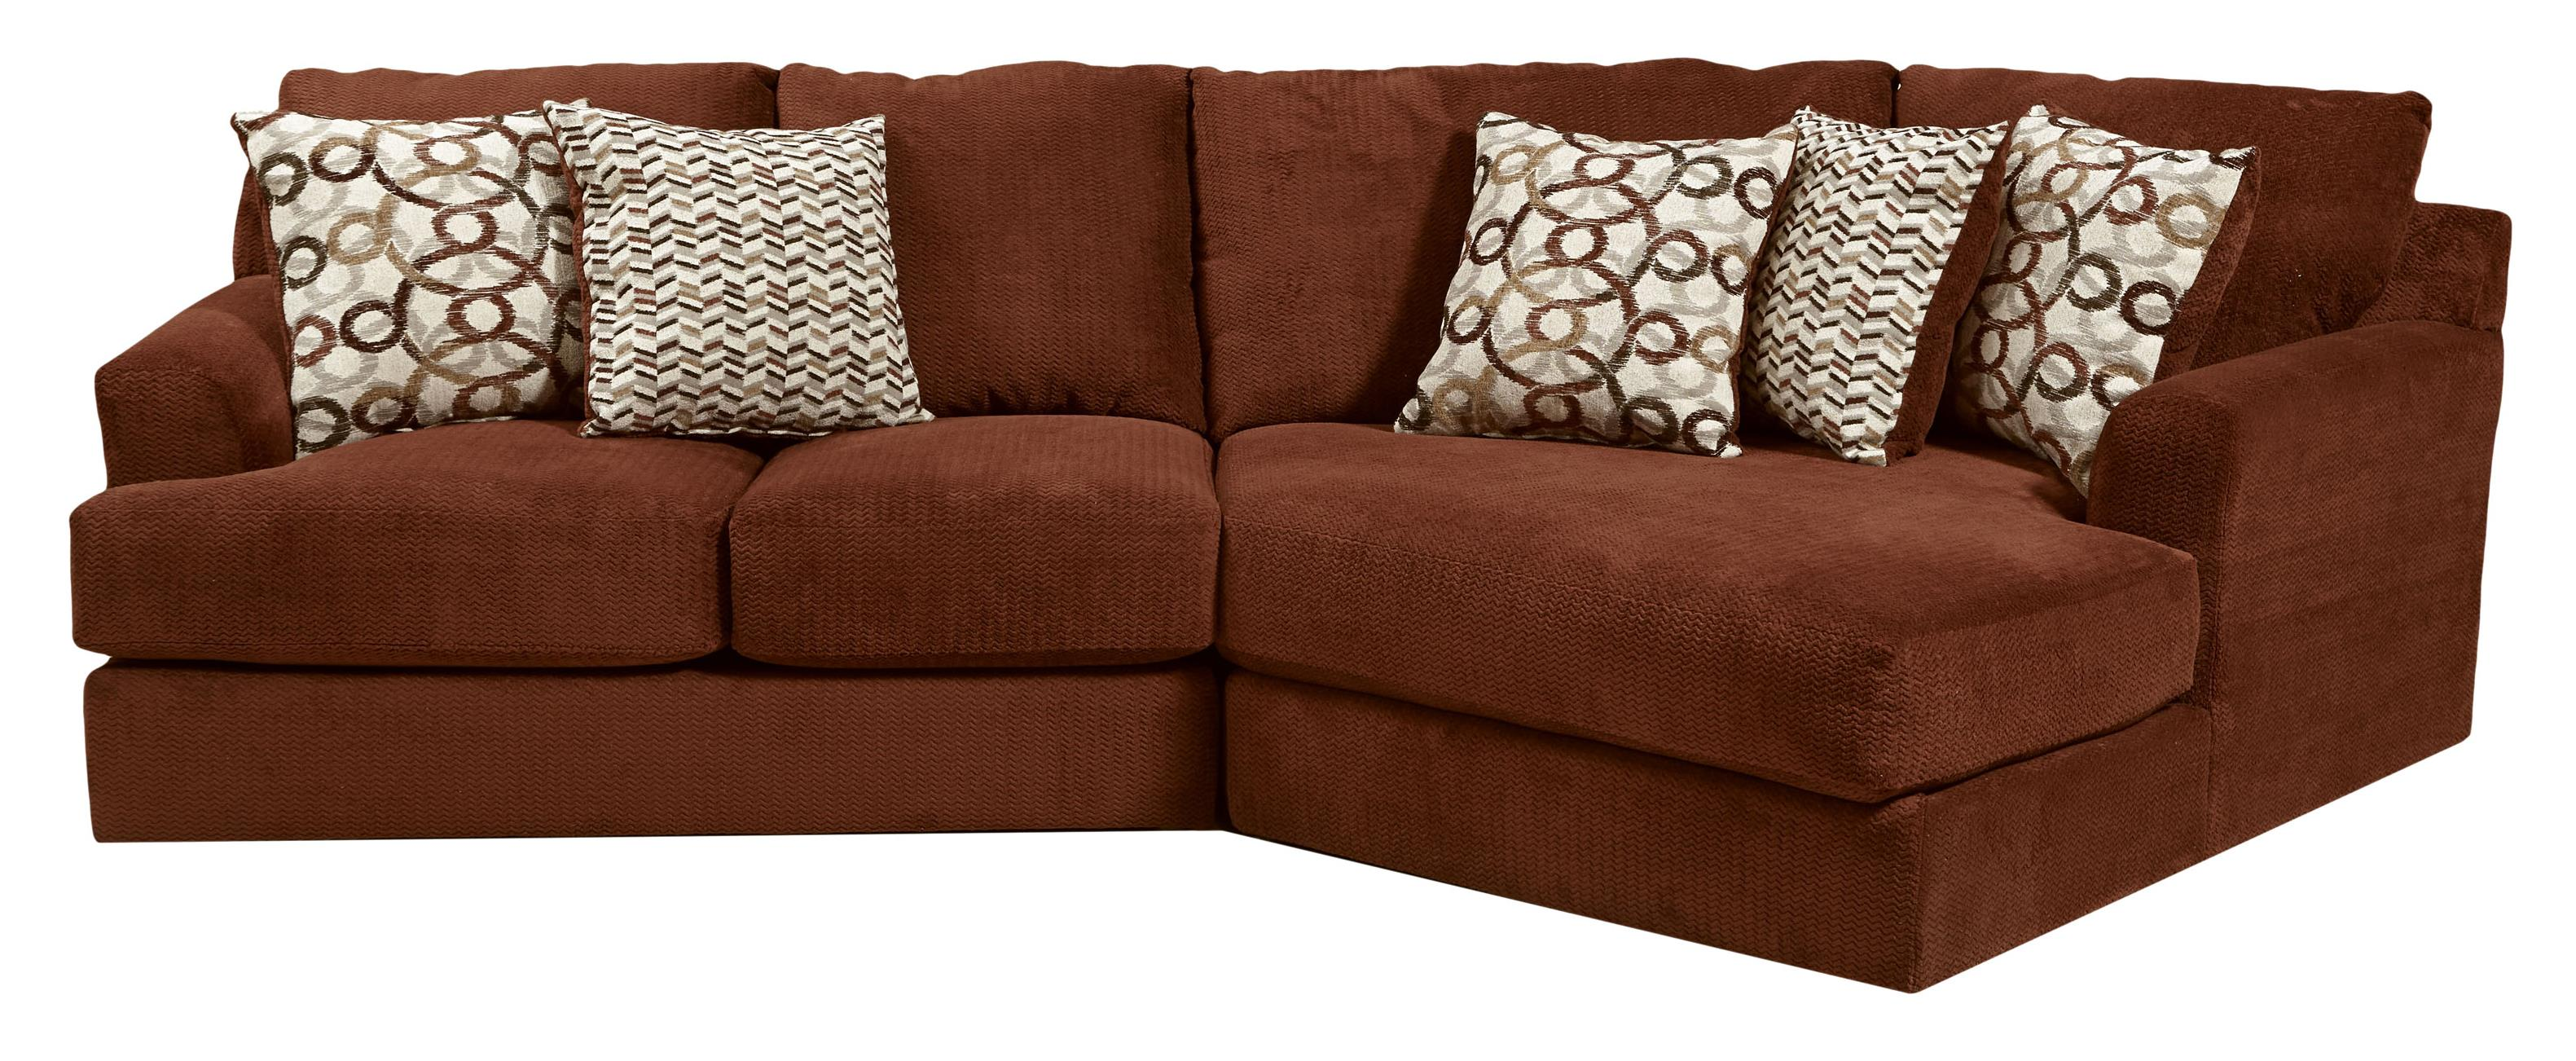 Small Three Seat Sectional Sofa by Jackson Furniture | Wolf Furniture